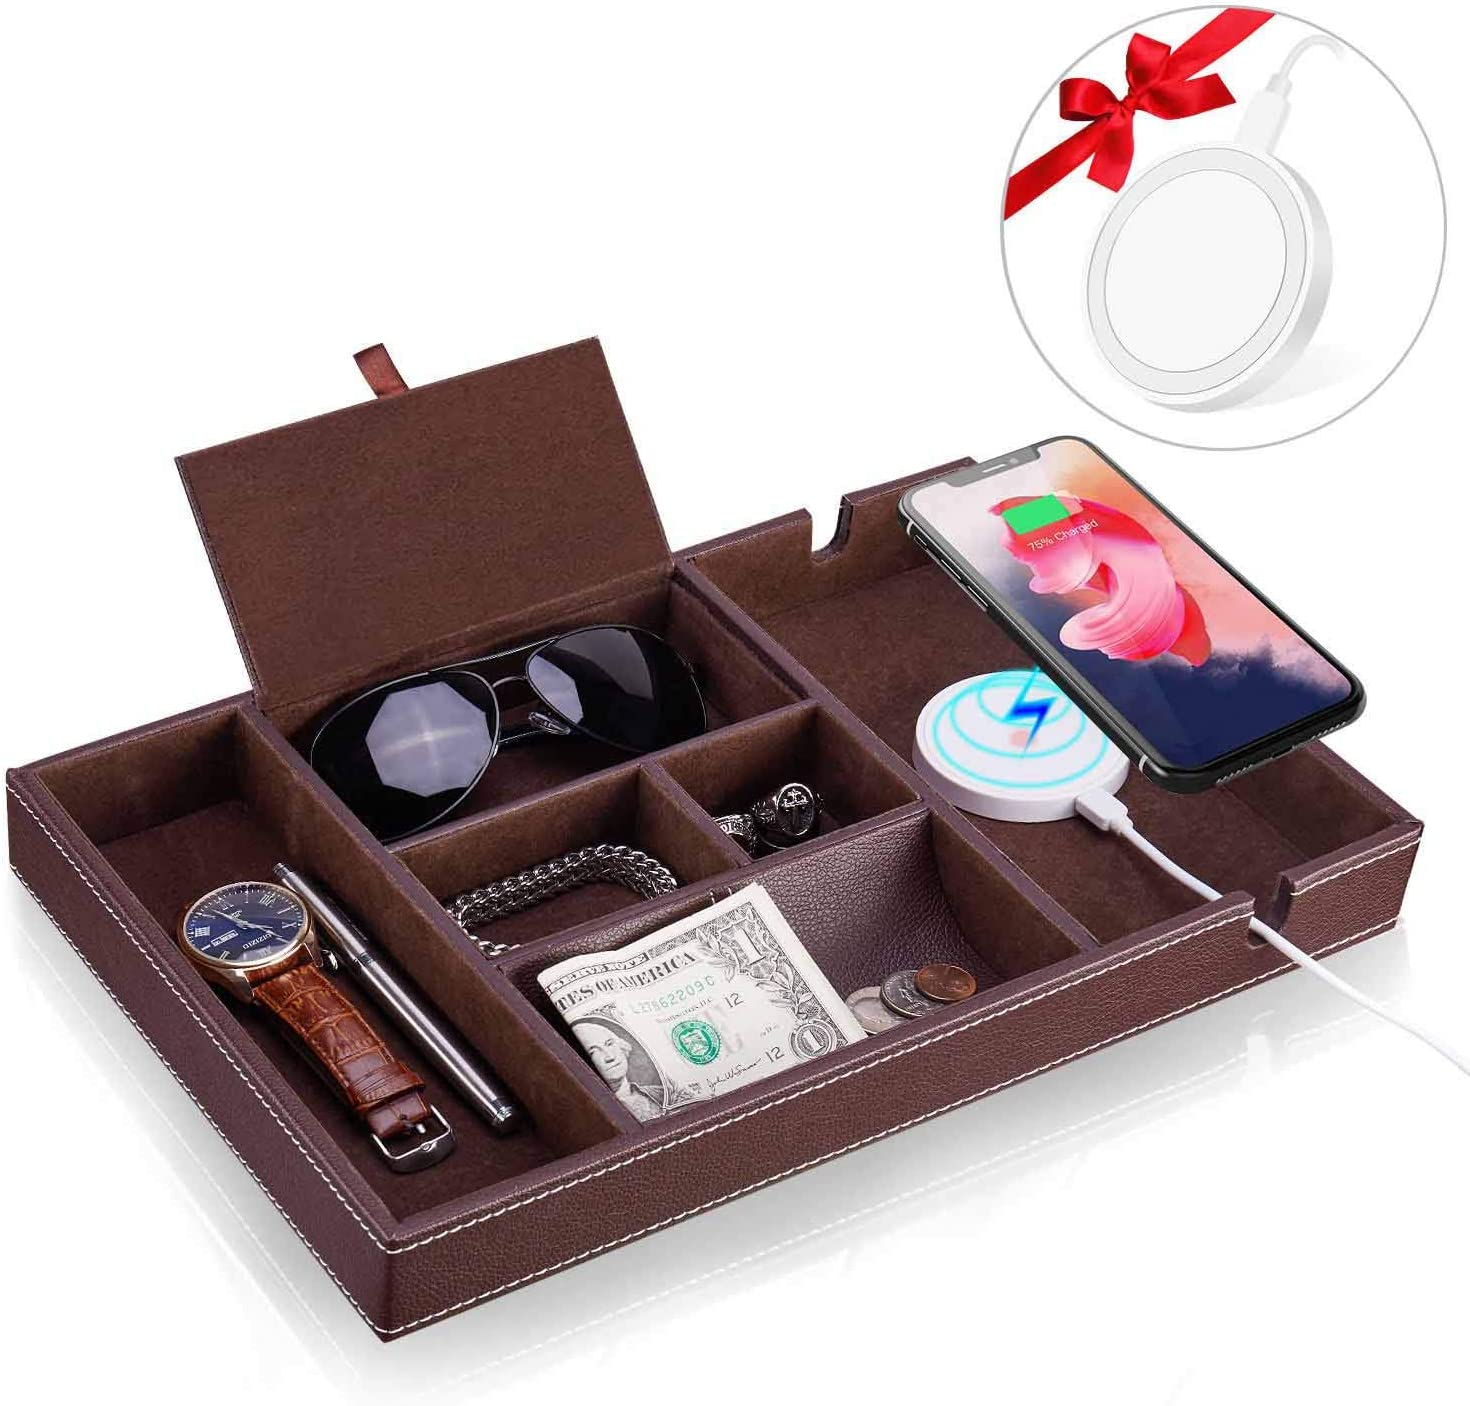 Baoyun Mens Valet Tray Organizer: Leather Catchall Tray with lid 6 Compartments Wallet Key Phone Organizer Tray with Wireless Charger and Men Charging Station Valet Tray Nightstand Organizer,Brown